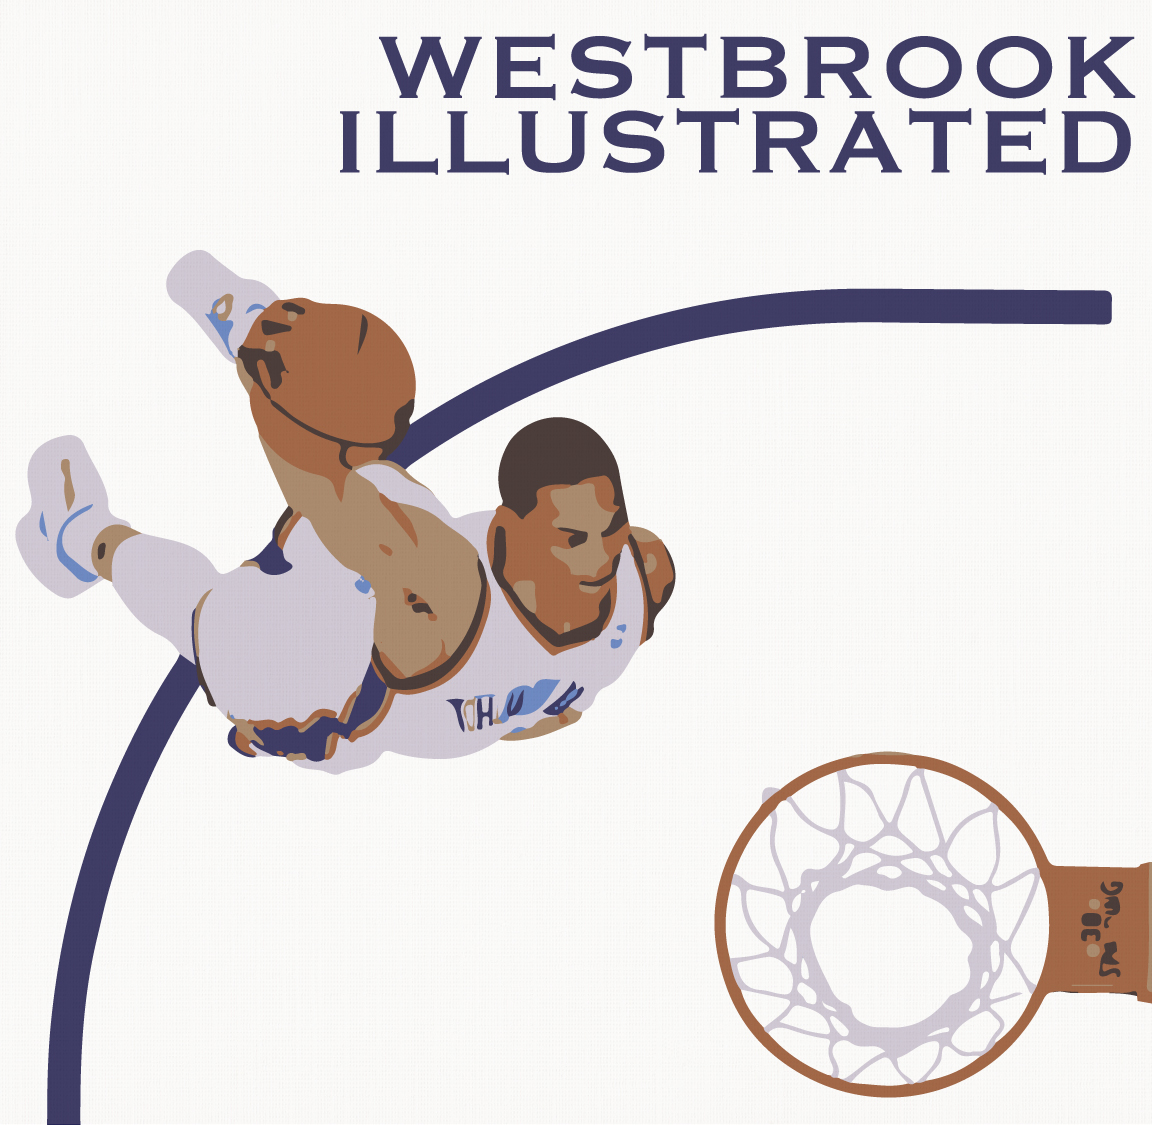 WestbrookIllustrated_1152